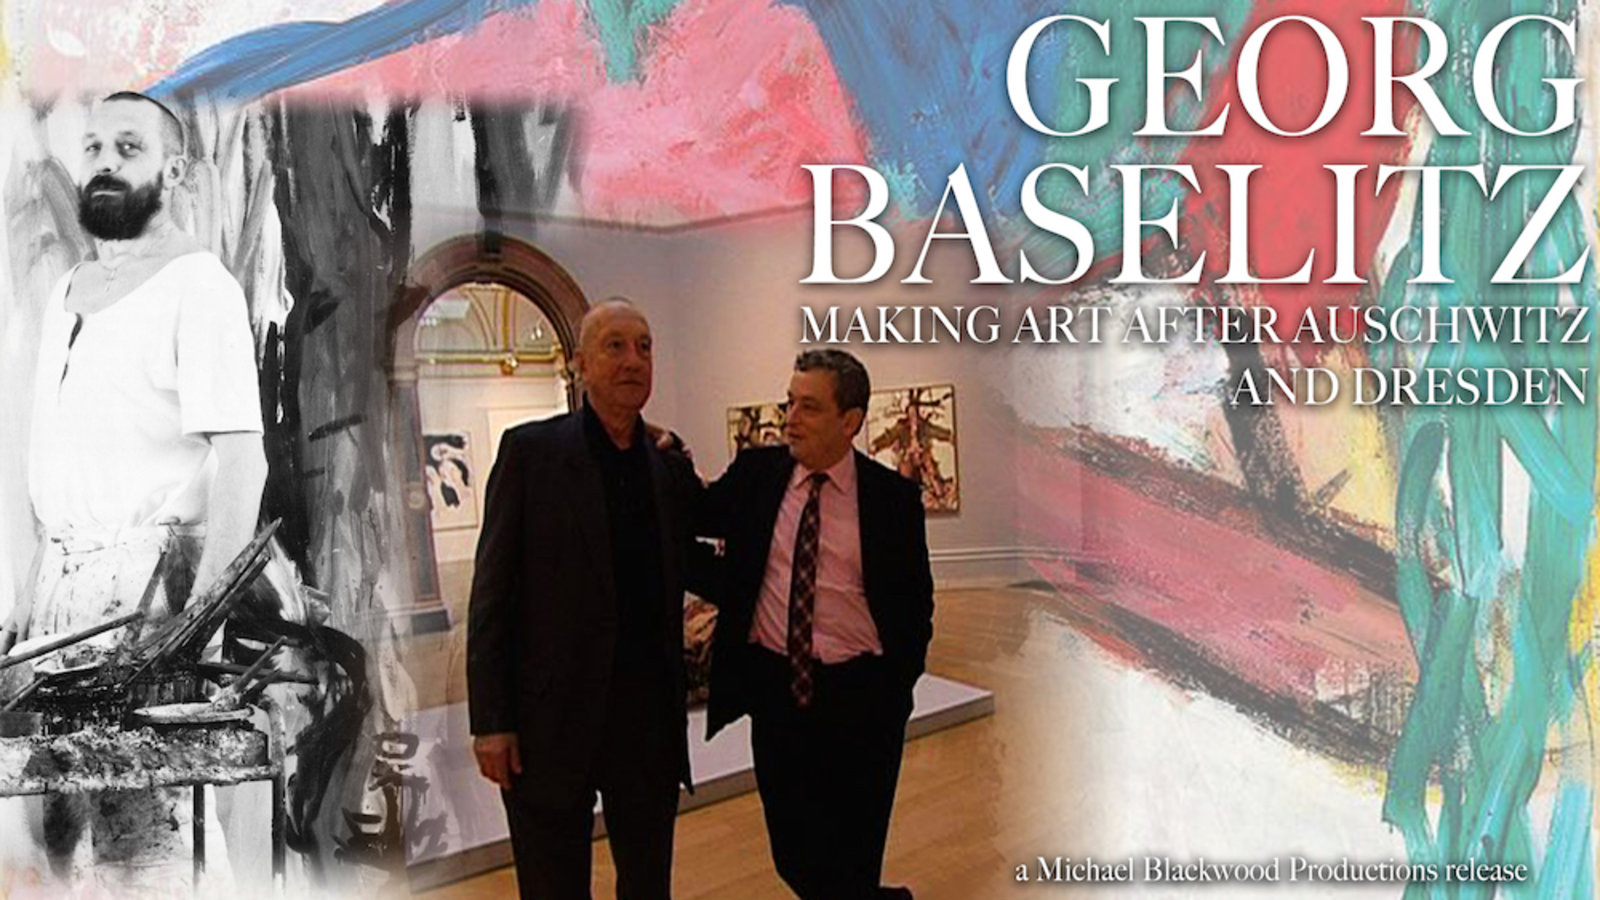 Georg Baselitz - Making Art after Auschwitz and Dresden